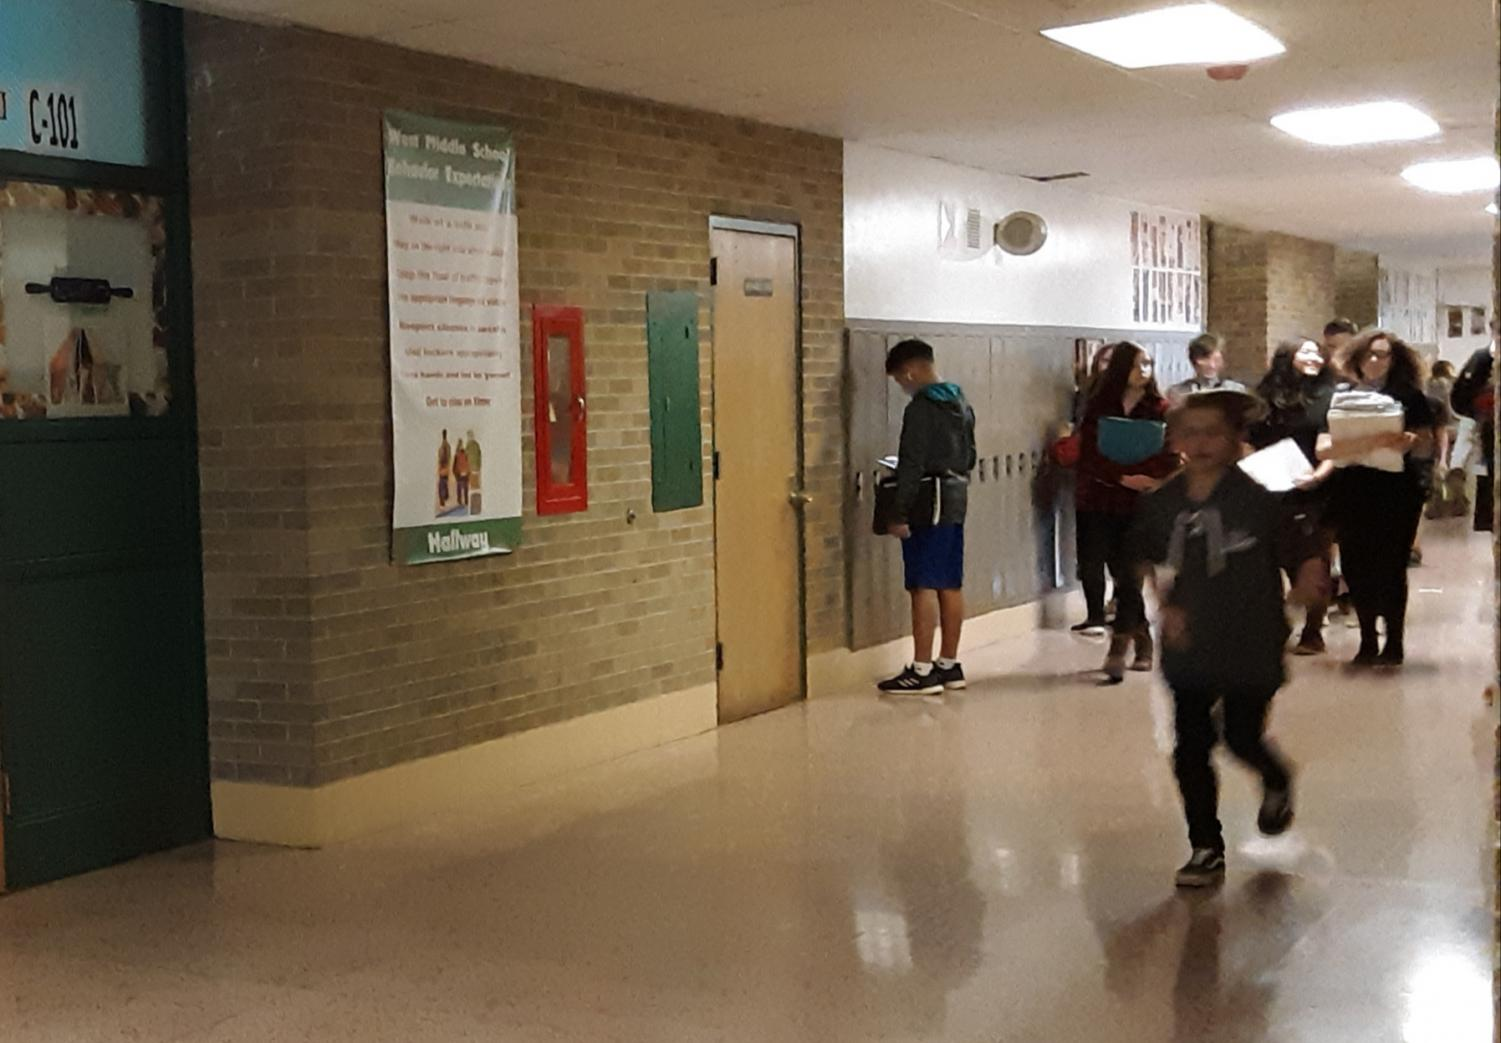 The 8th grade hallway at West.